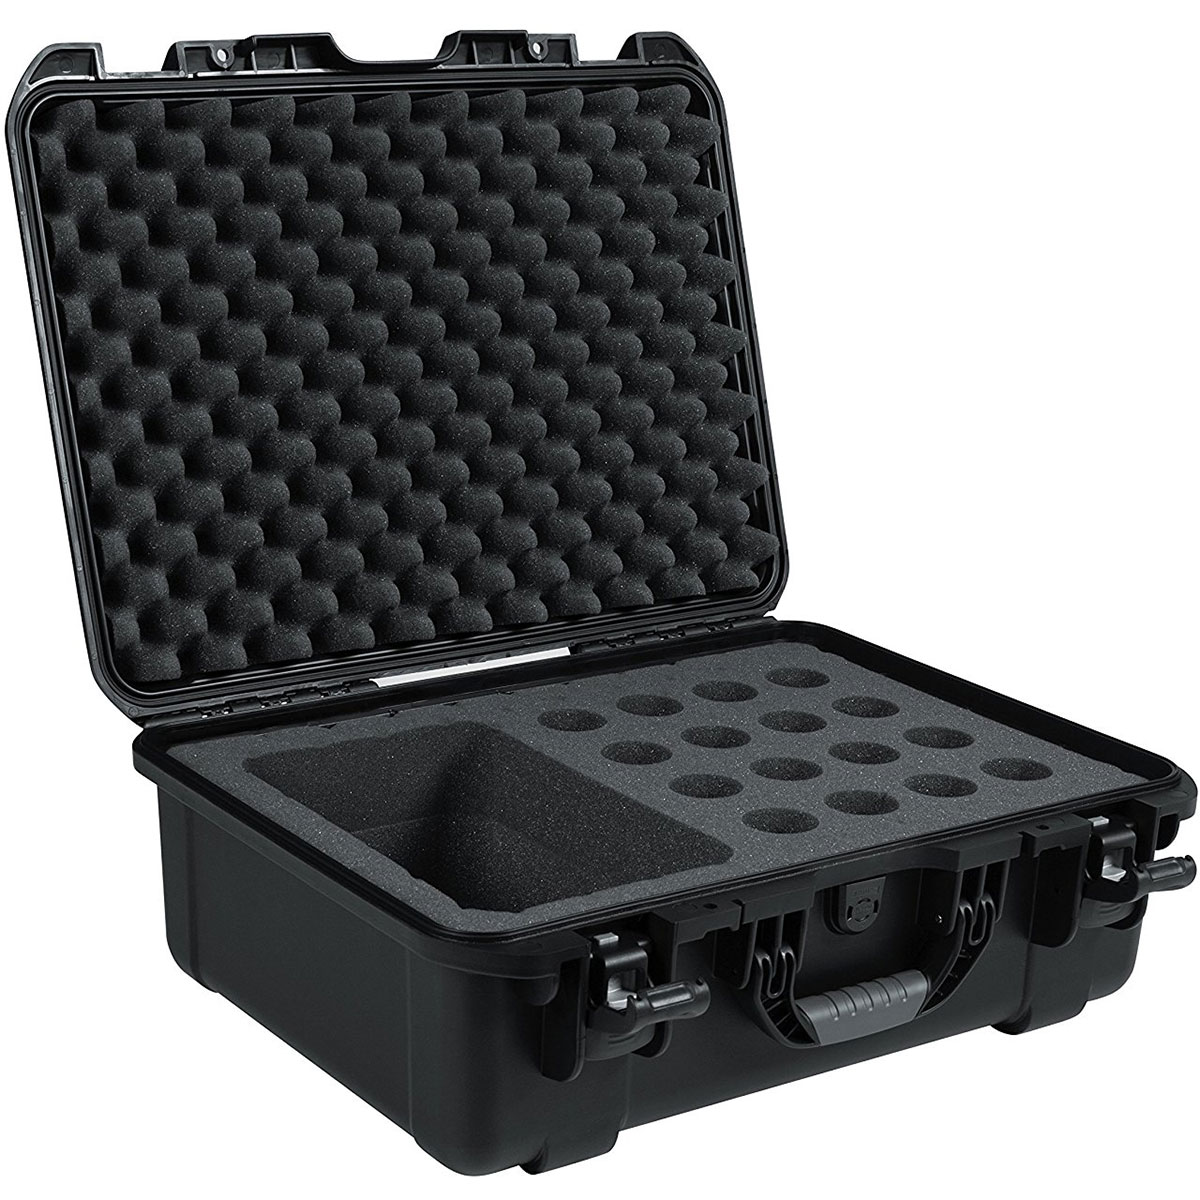 Gator Cases Black Waterproof Injection Molded Case with Foam Insert for 16 Handheld Microphones and Accessories